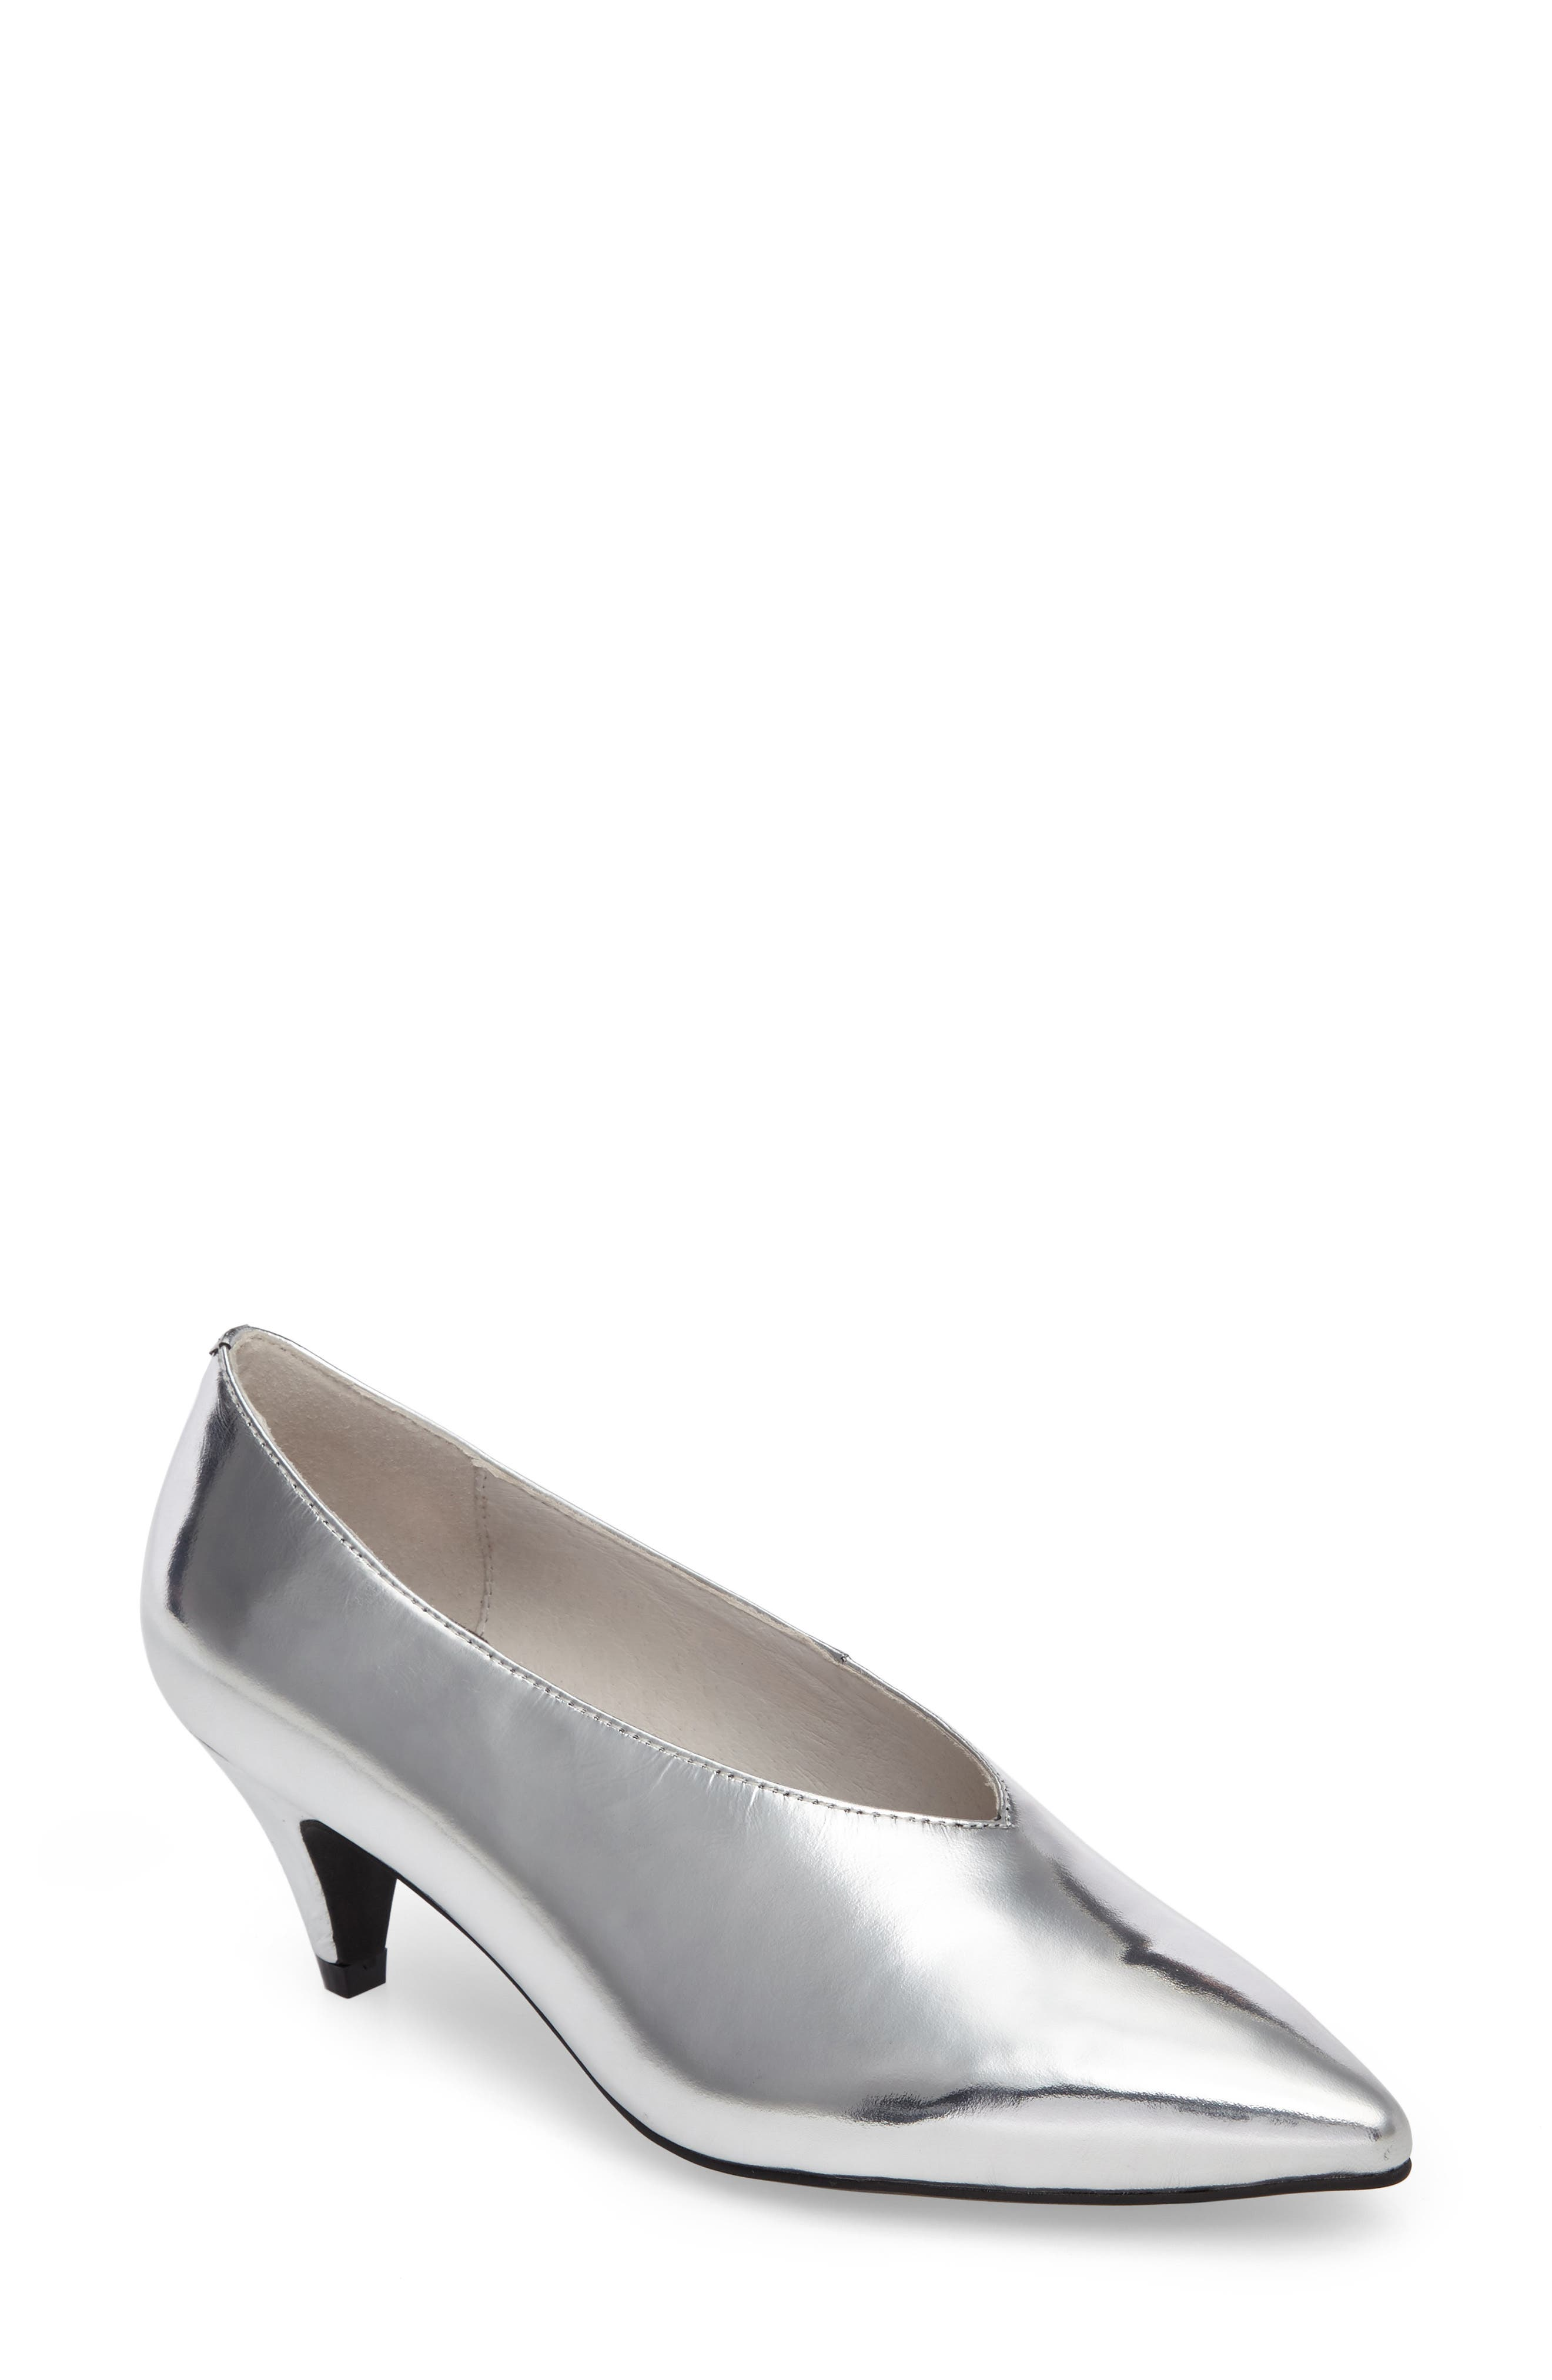 Alternate Image 1 Selected - Jeffrey Campbell 'Carla' Pointy Toe Pump (Women)